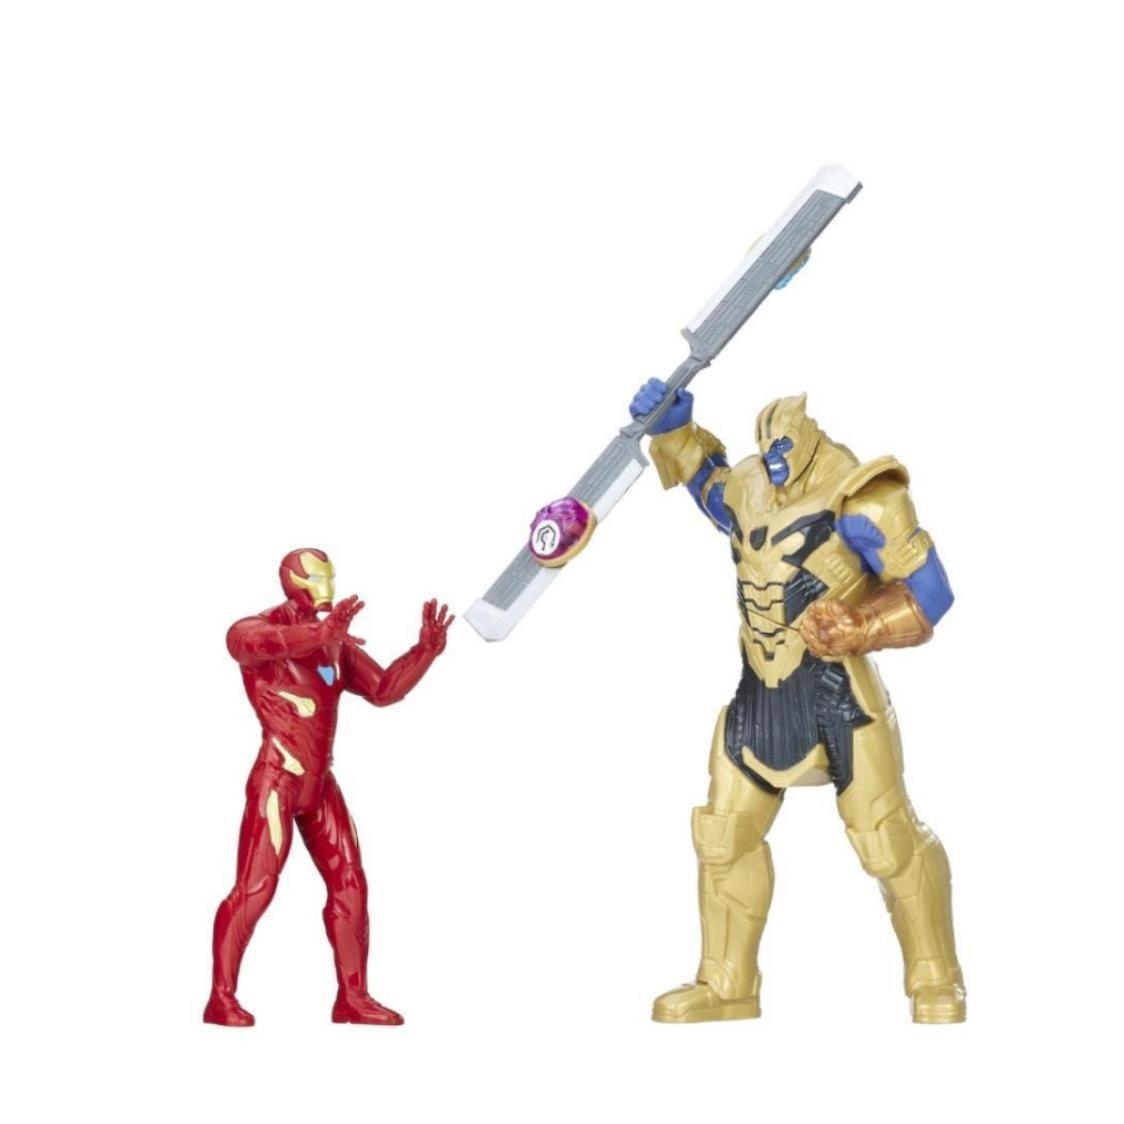 Marvel Avengers Infinity War Iron Man vs Thanos Battle Set